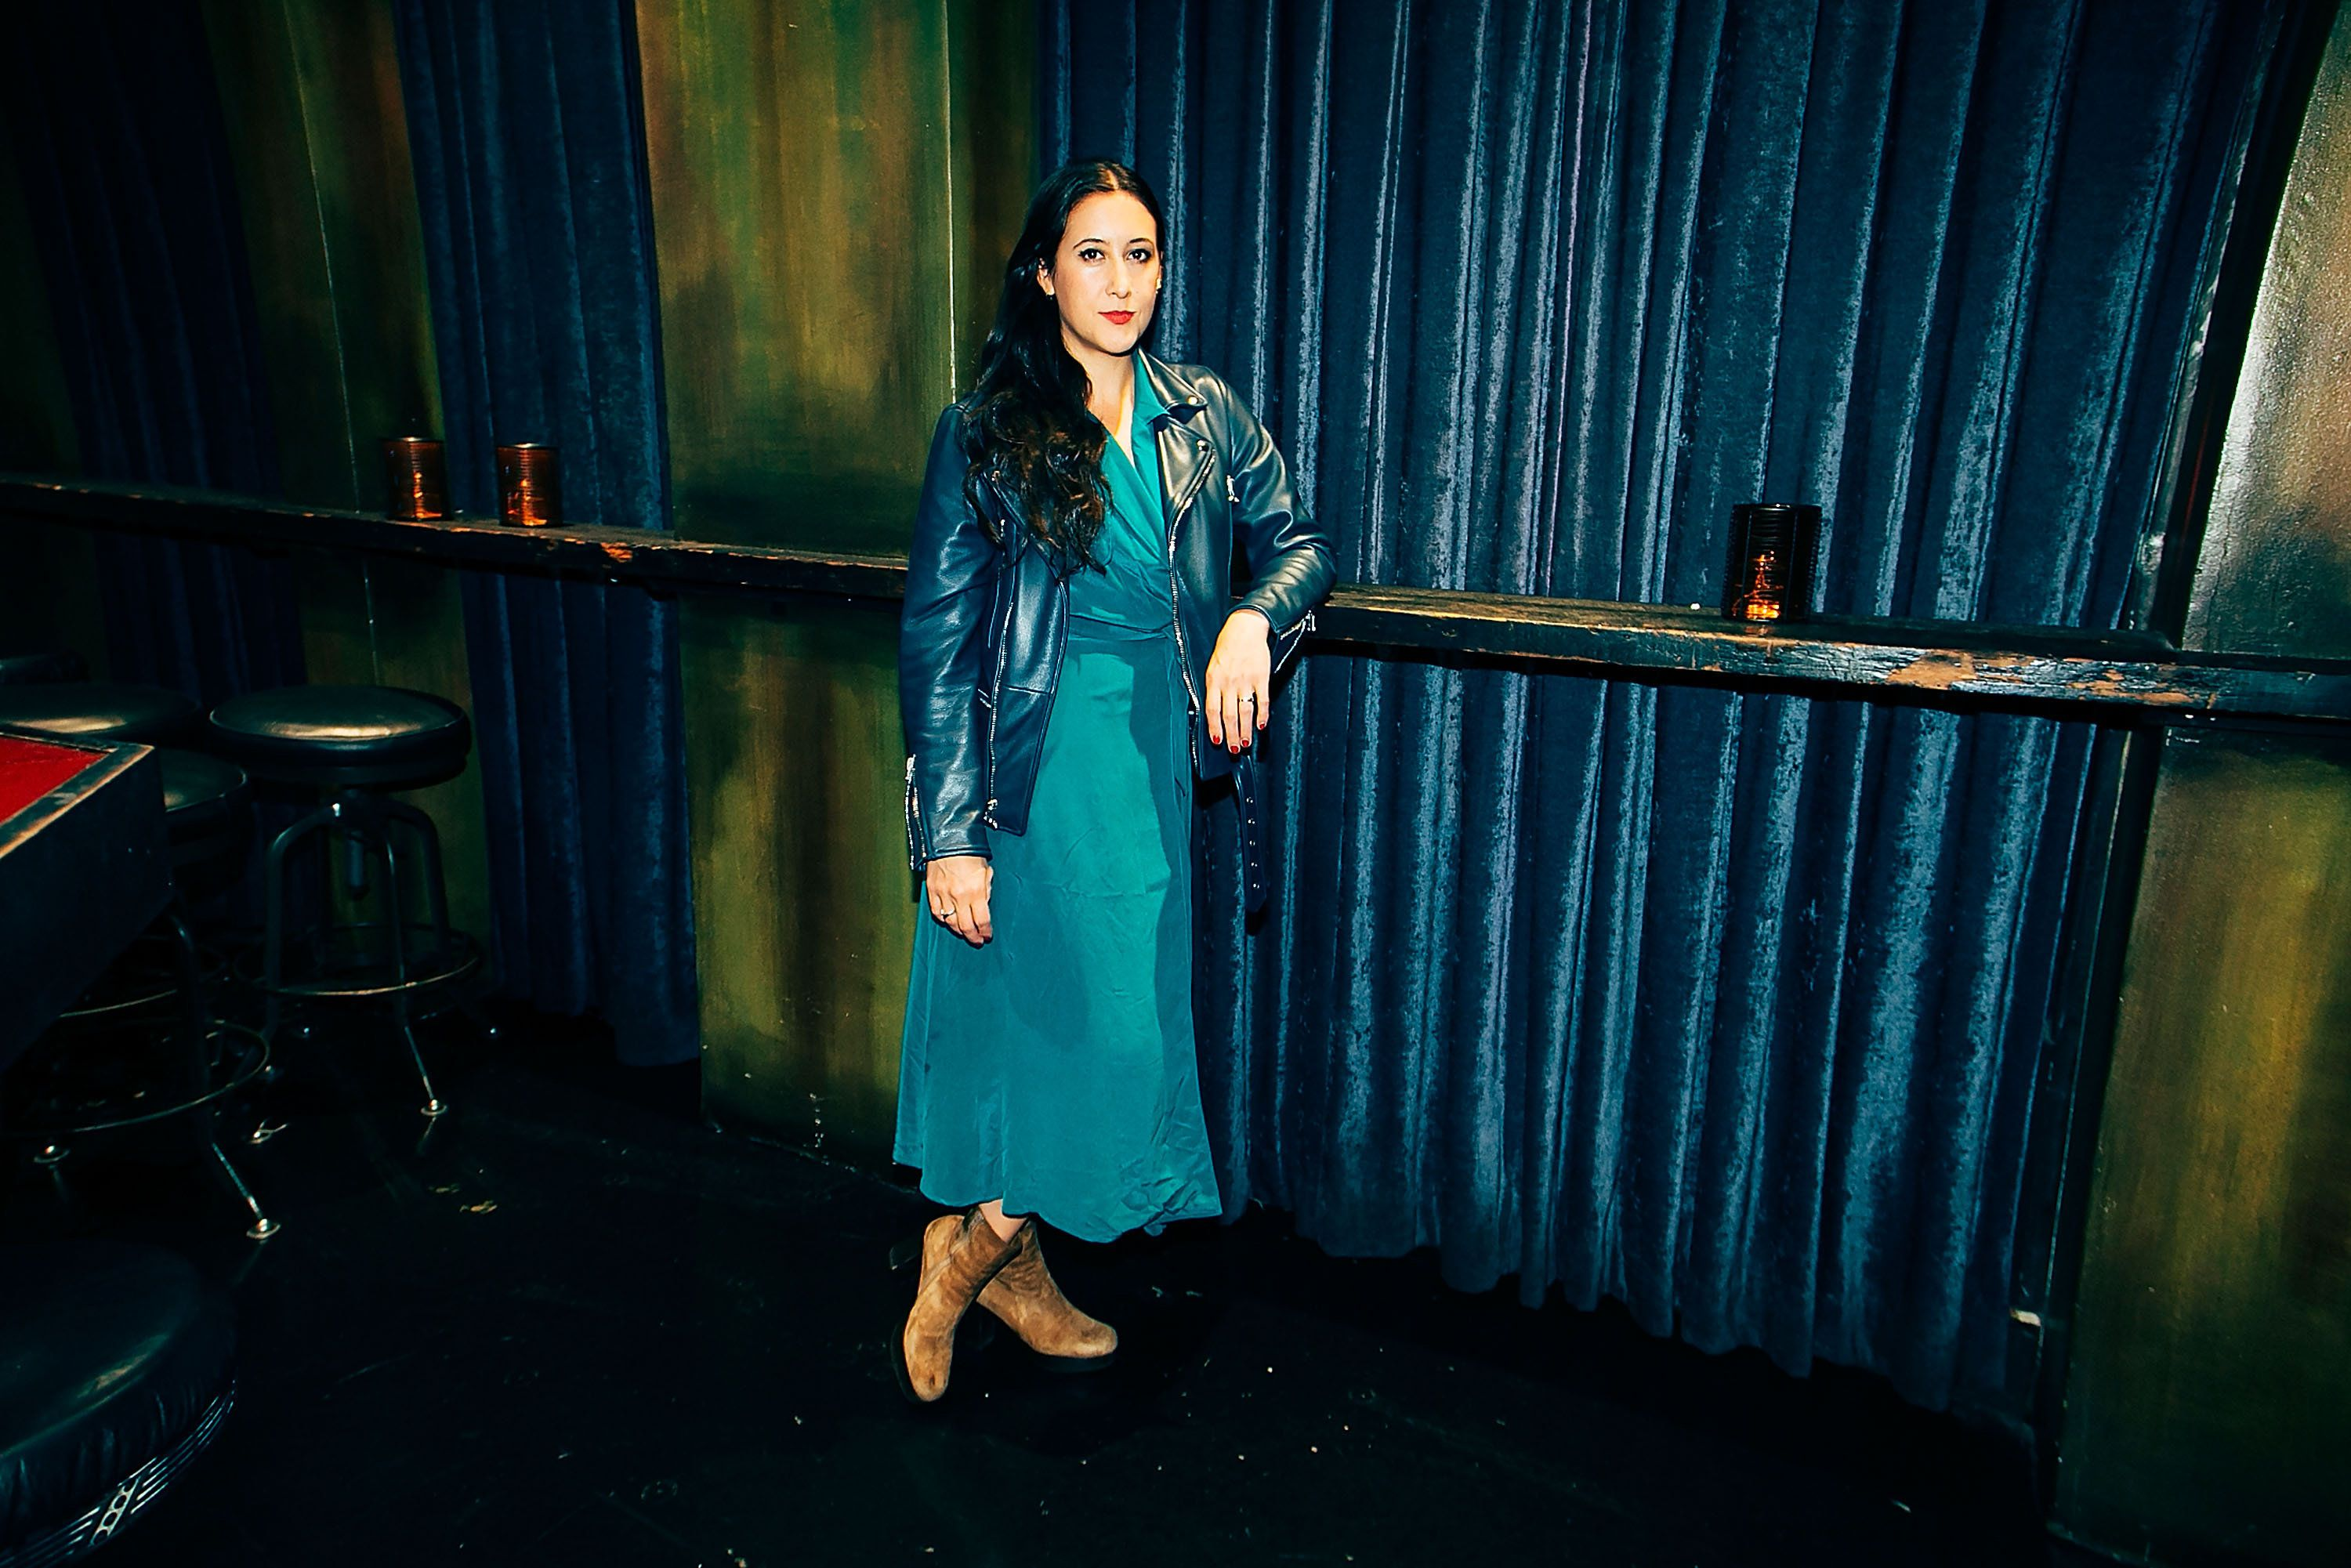 HOLLYWOOD, CA - SEPTEMBER 15:  Vanessa Carlton poses for a portrait at The Sayers Club on September 15, 2015 in Hollywood, California.  (Photo by Gabriel Olsen/FilmMagic)